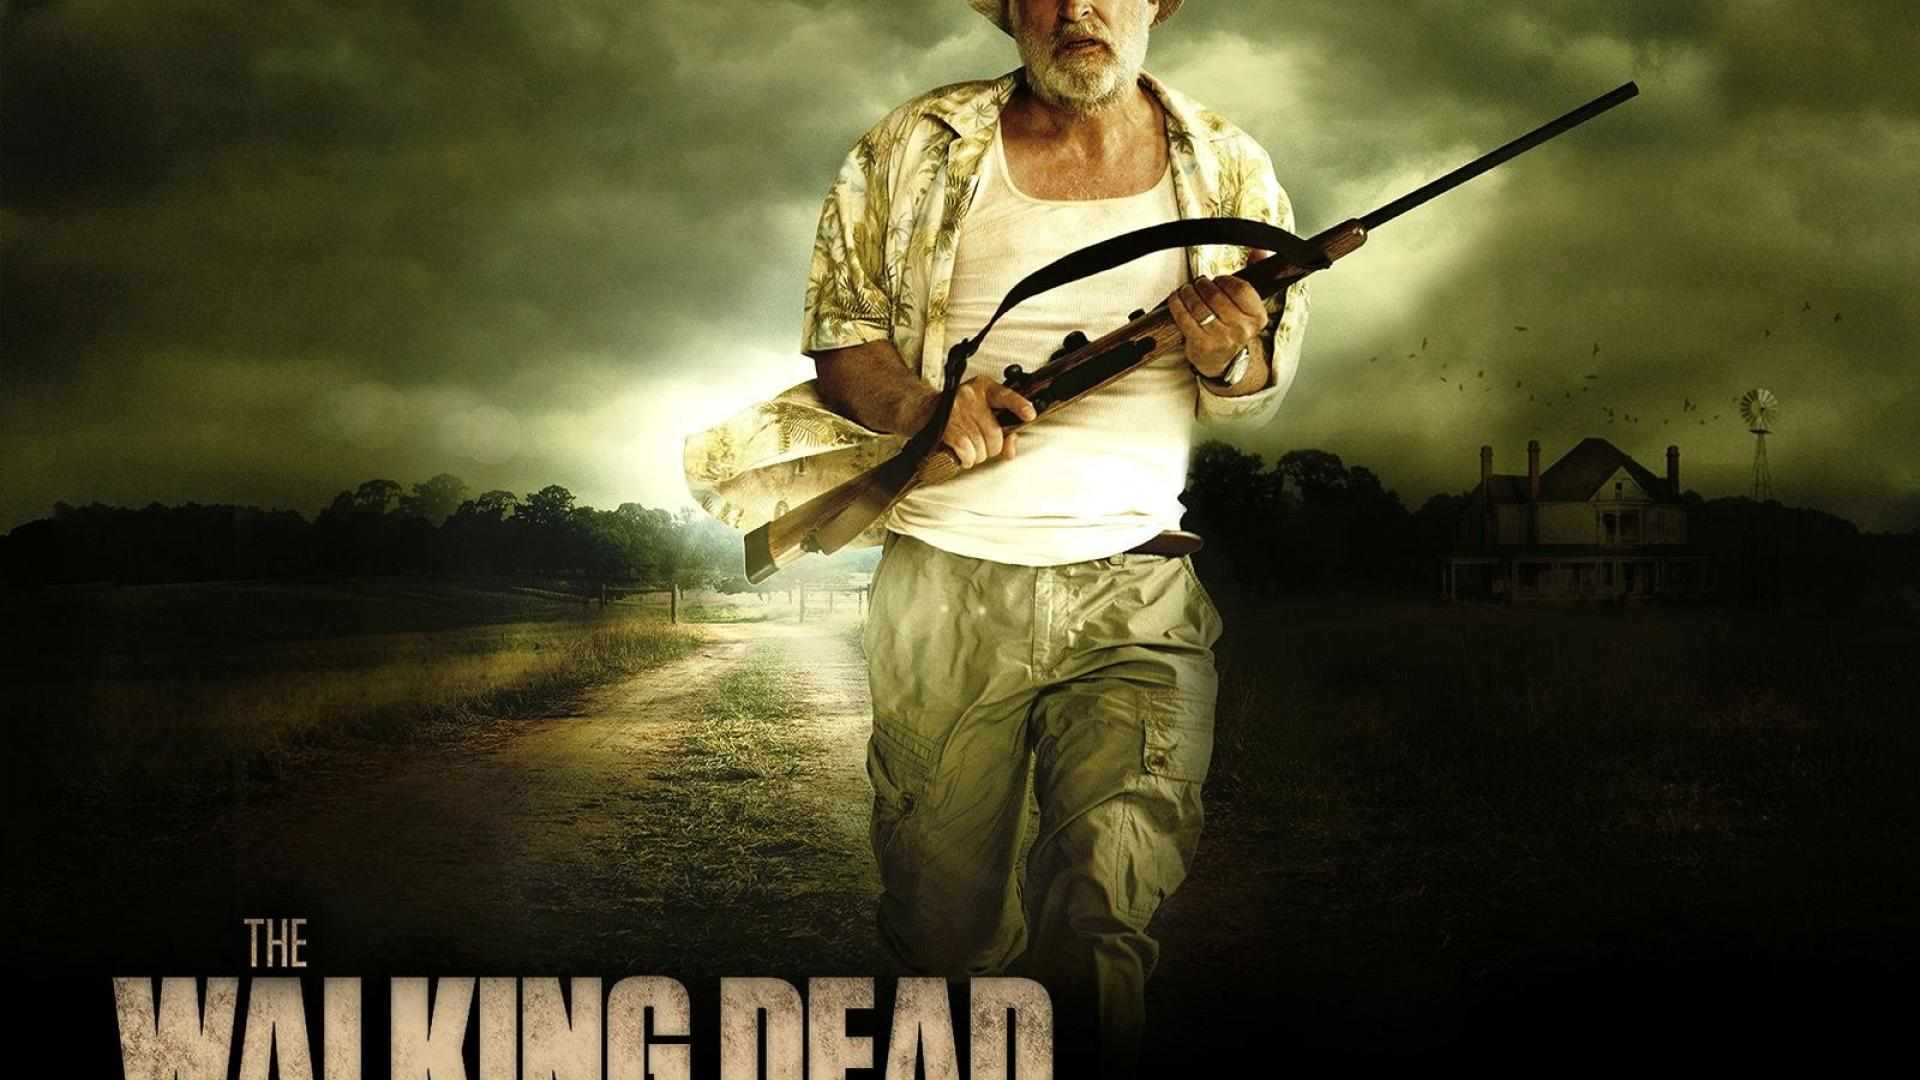 The Walking Dead Background   Wallpaper High Definition High Quality 1920x1080